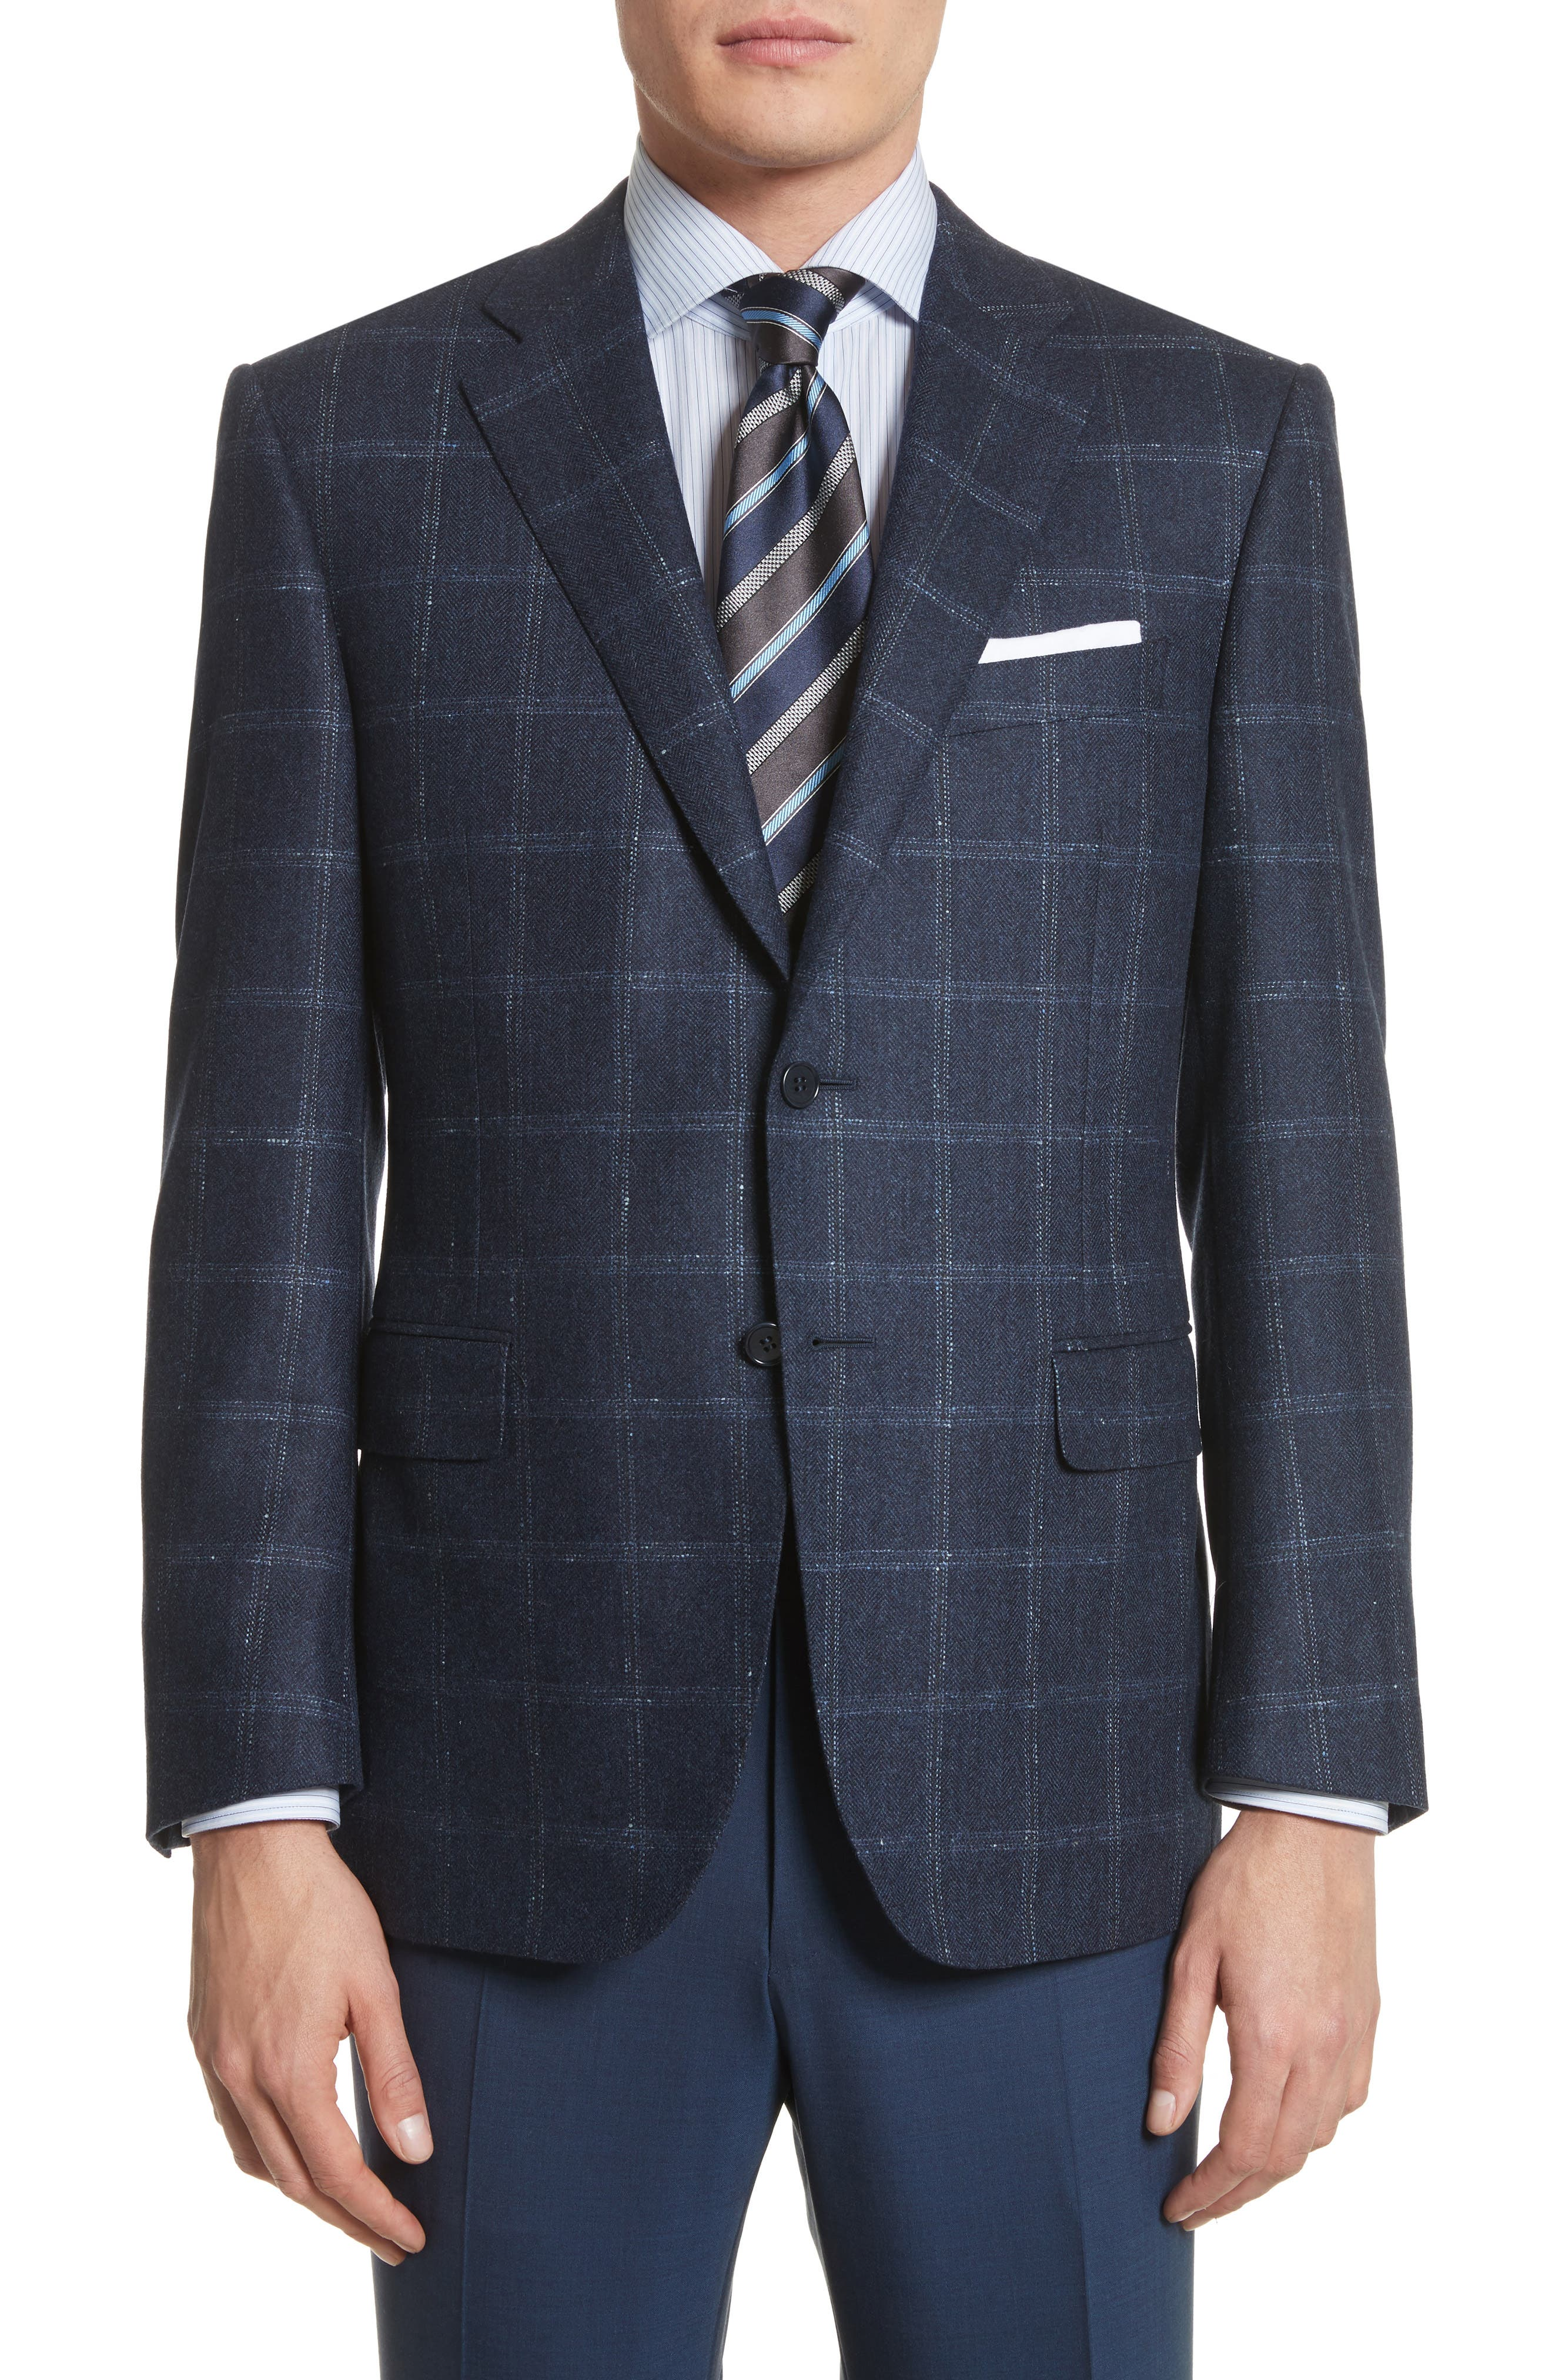 Alternate Image 1 Selected - Canali Classic Fit Windowpane Wool & Cashmere Sport Coat